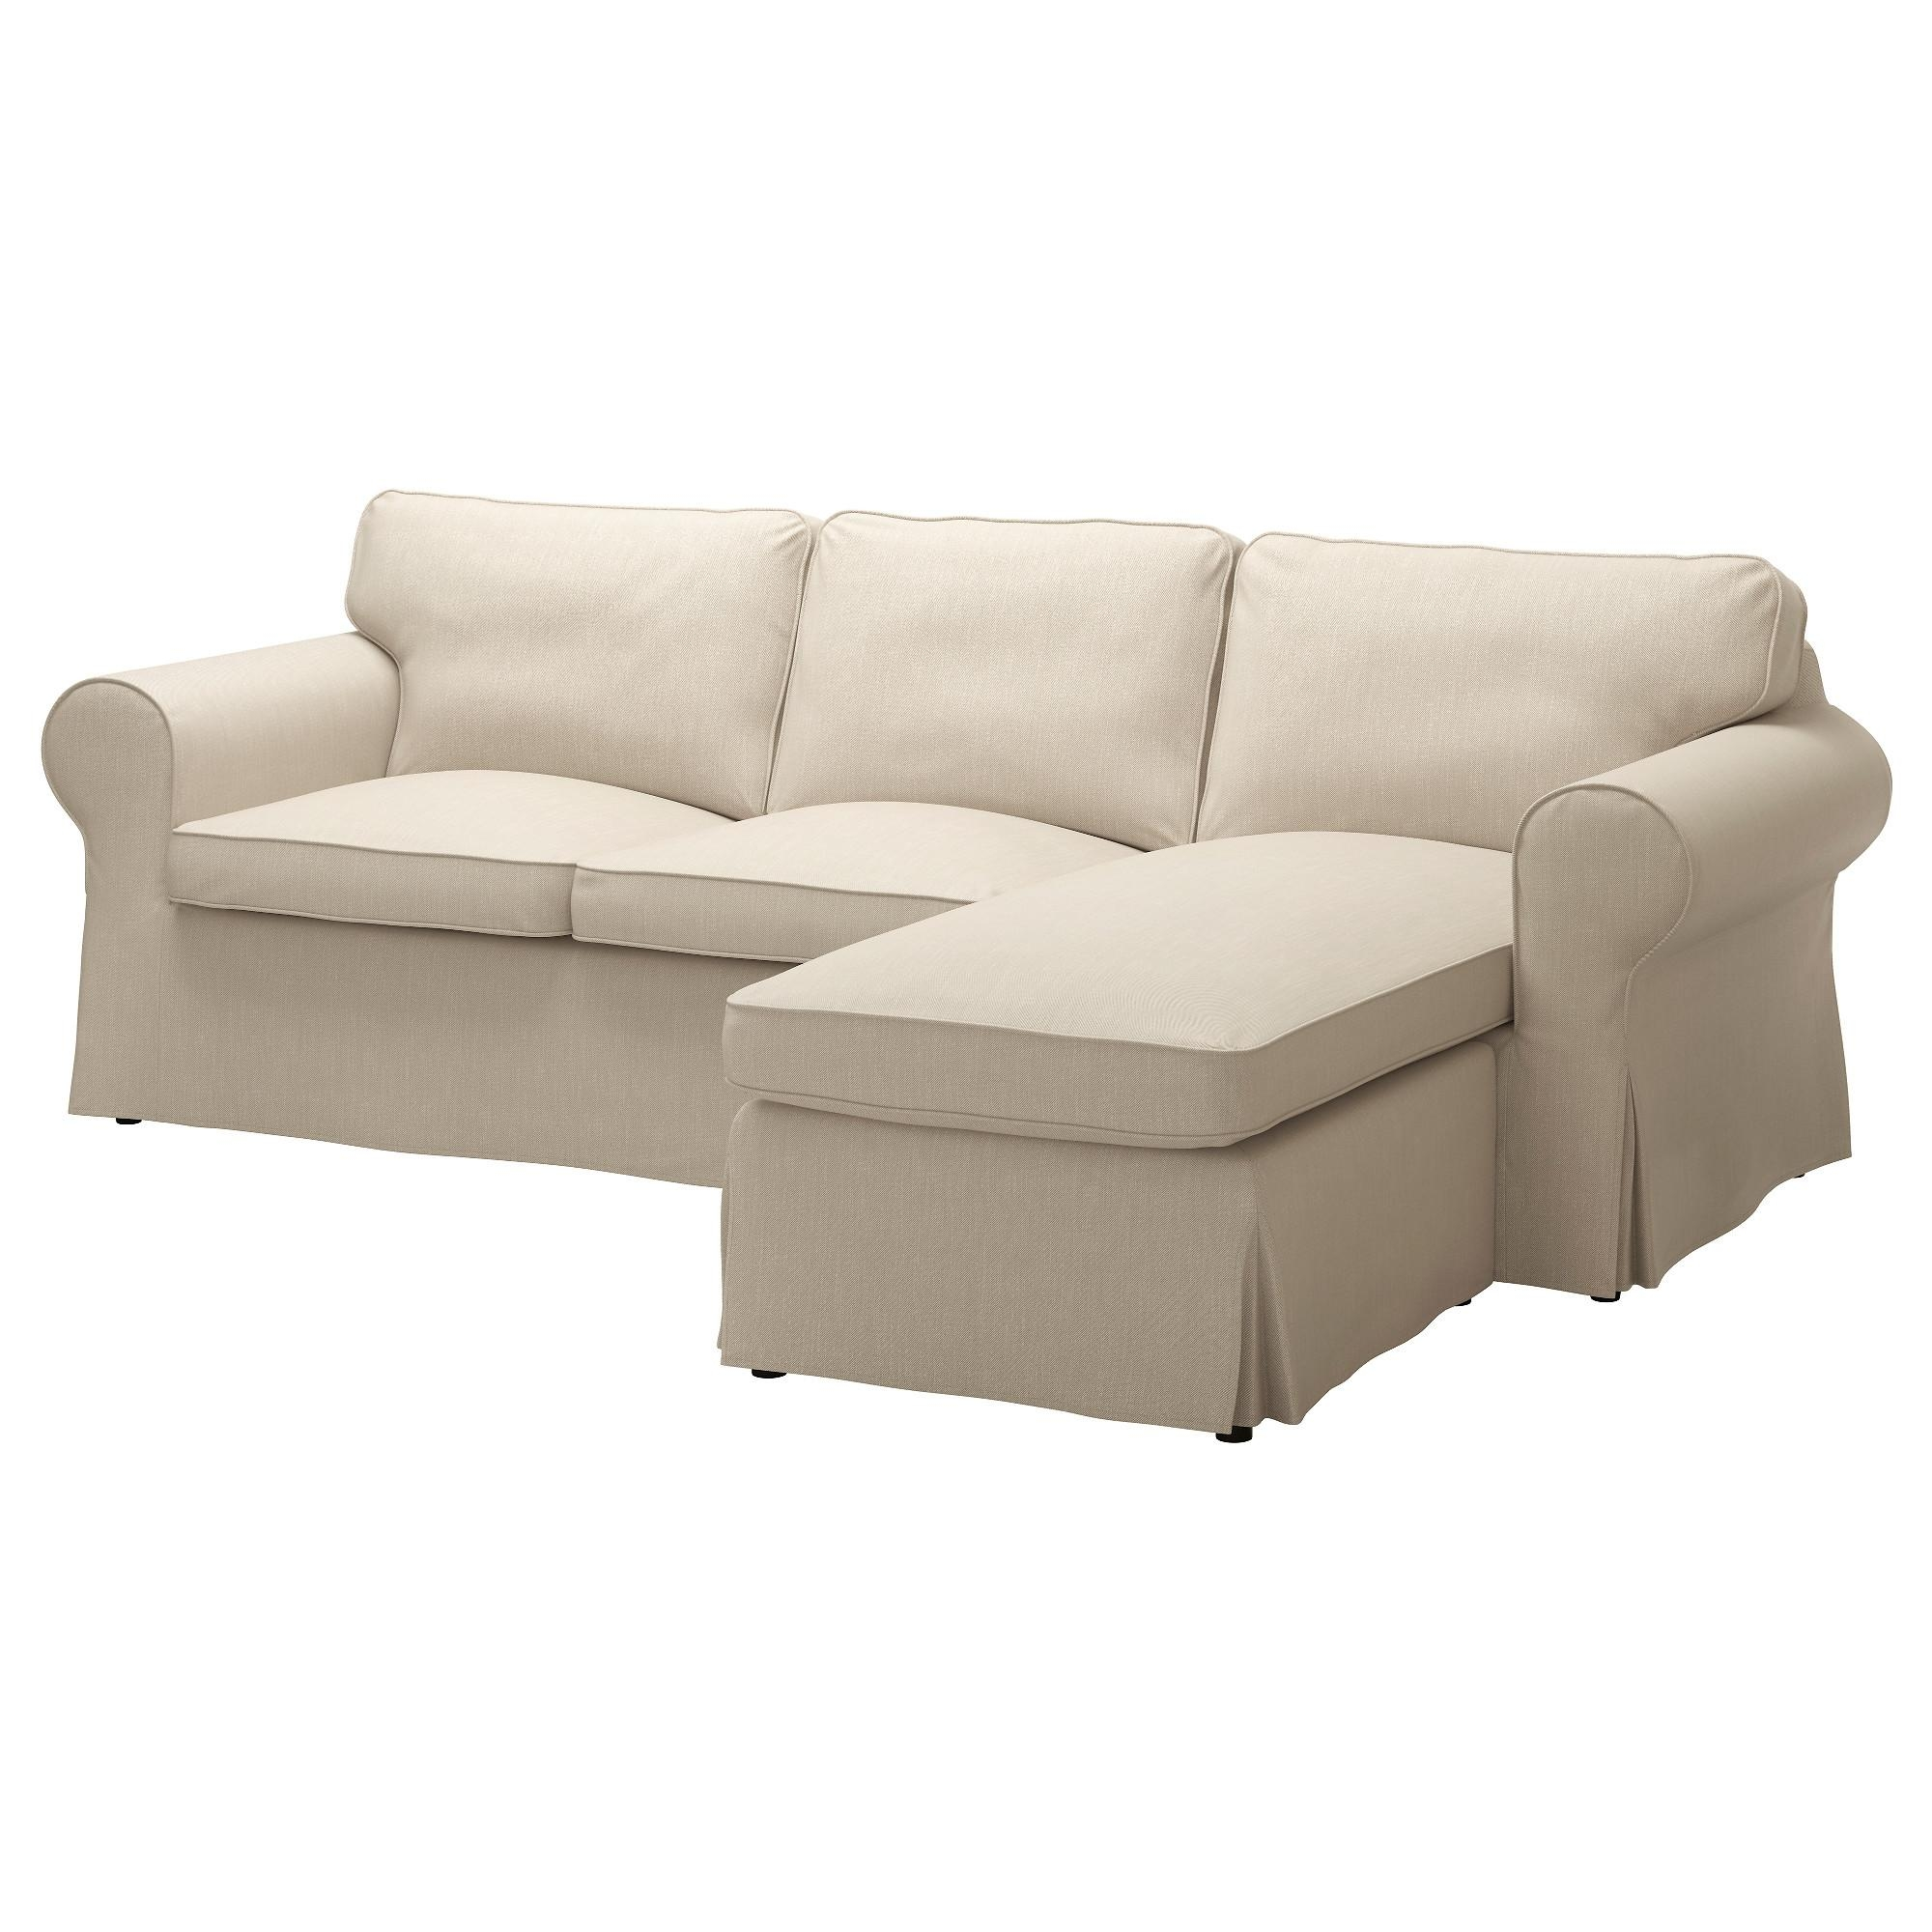 20 Photos Ikea Chaise Lounge Sofa Ideas